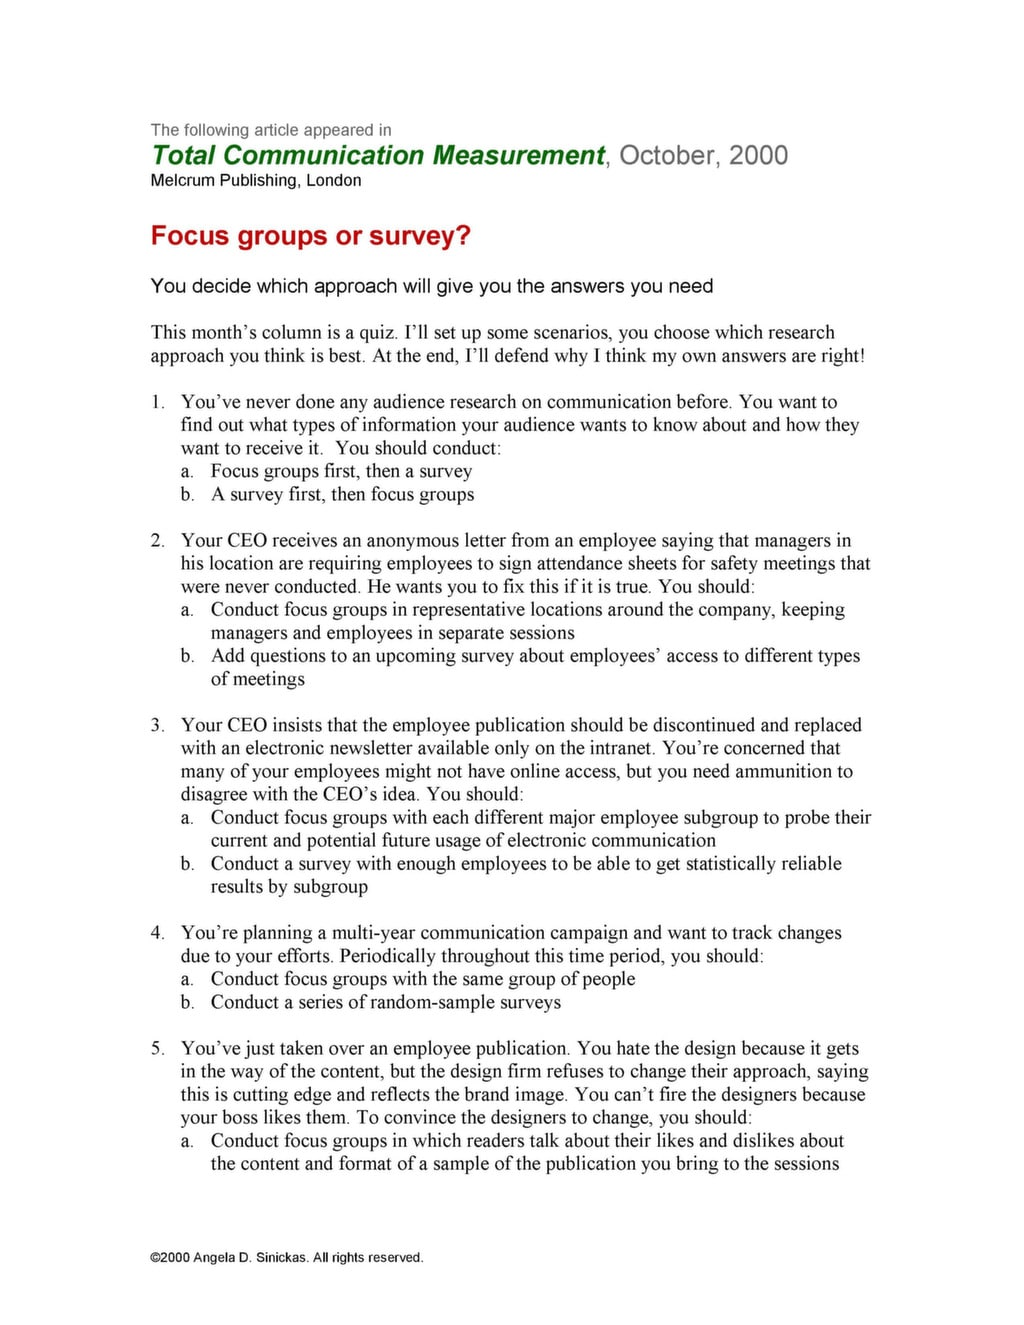 example of questionnaire in a focus groupe